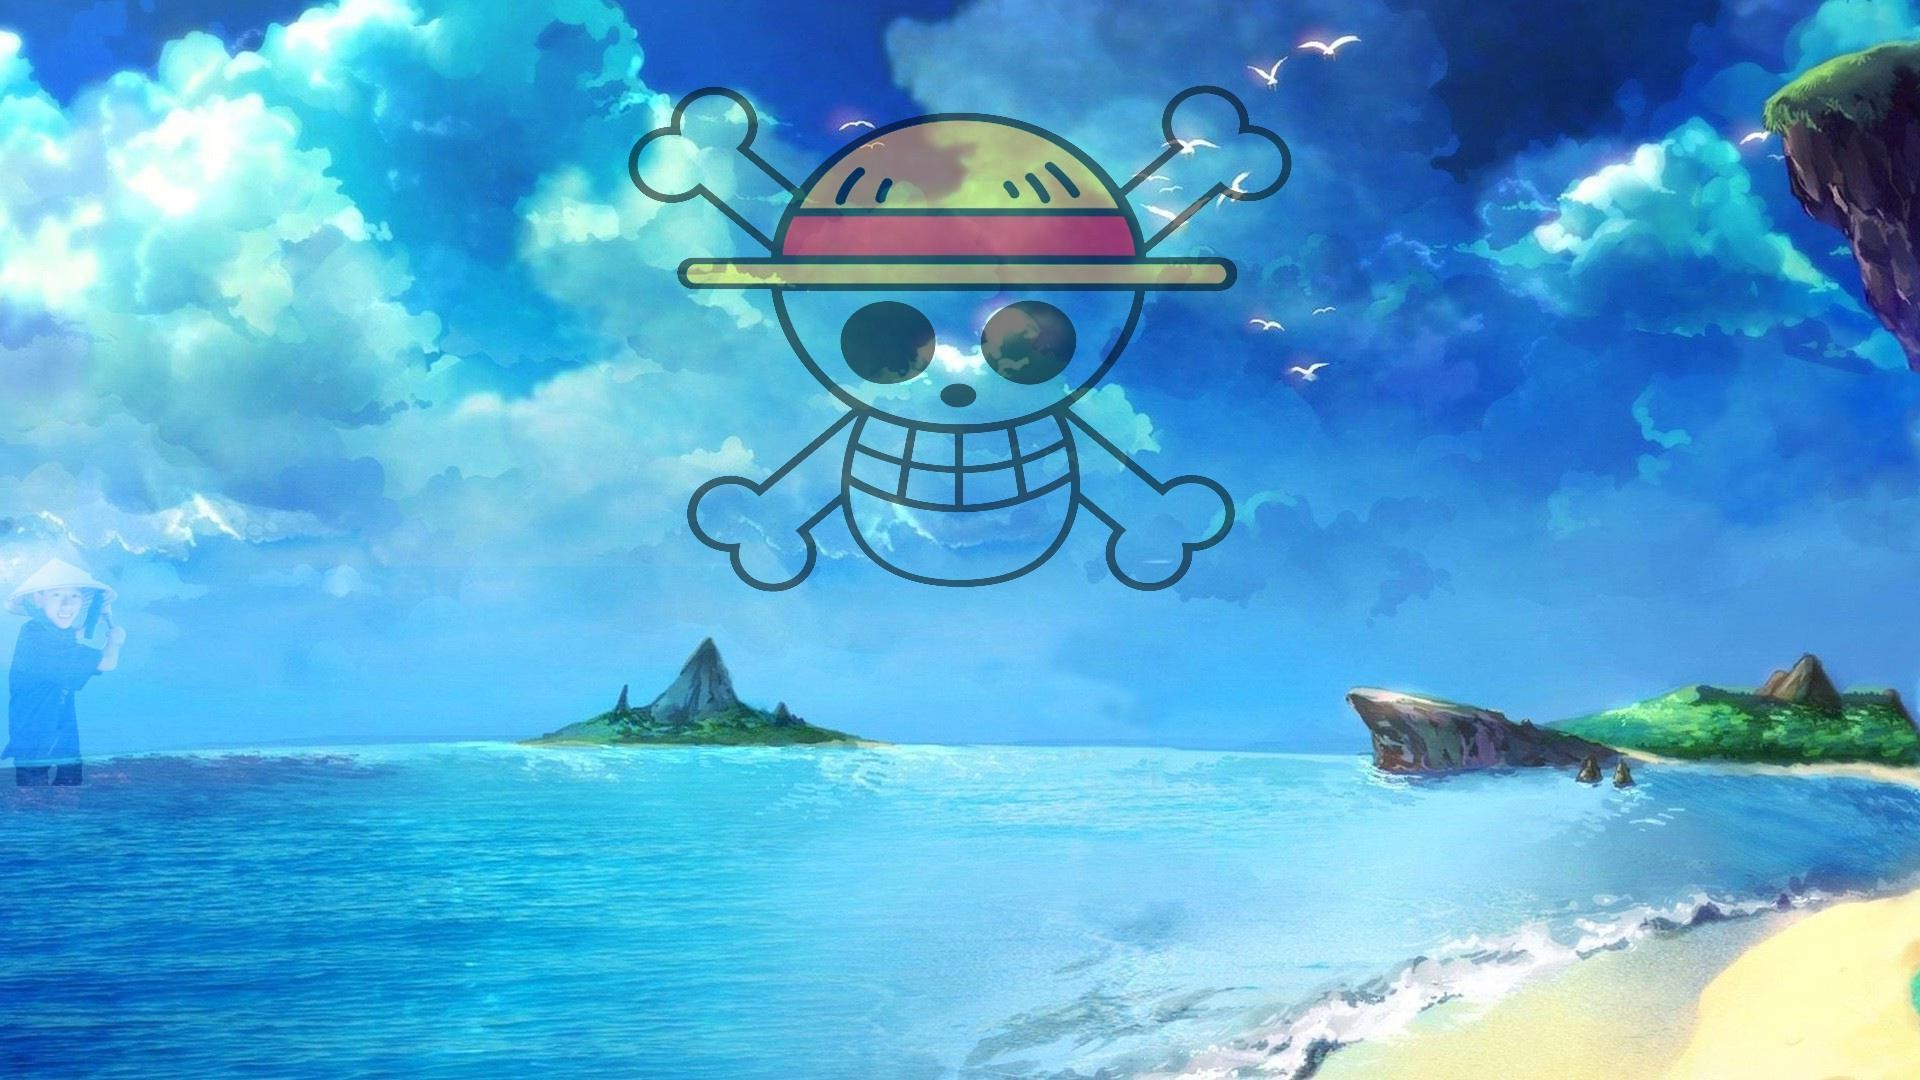 1920x1080 One Piece Wallpapers HD Free Dowload